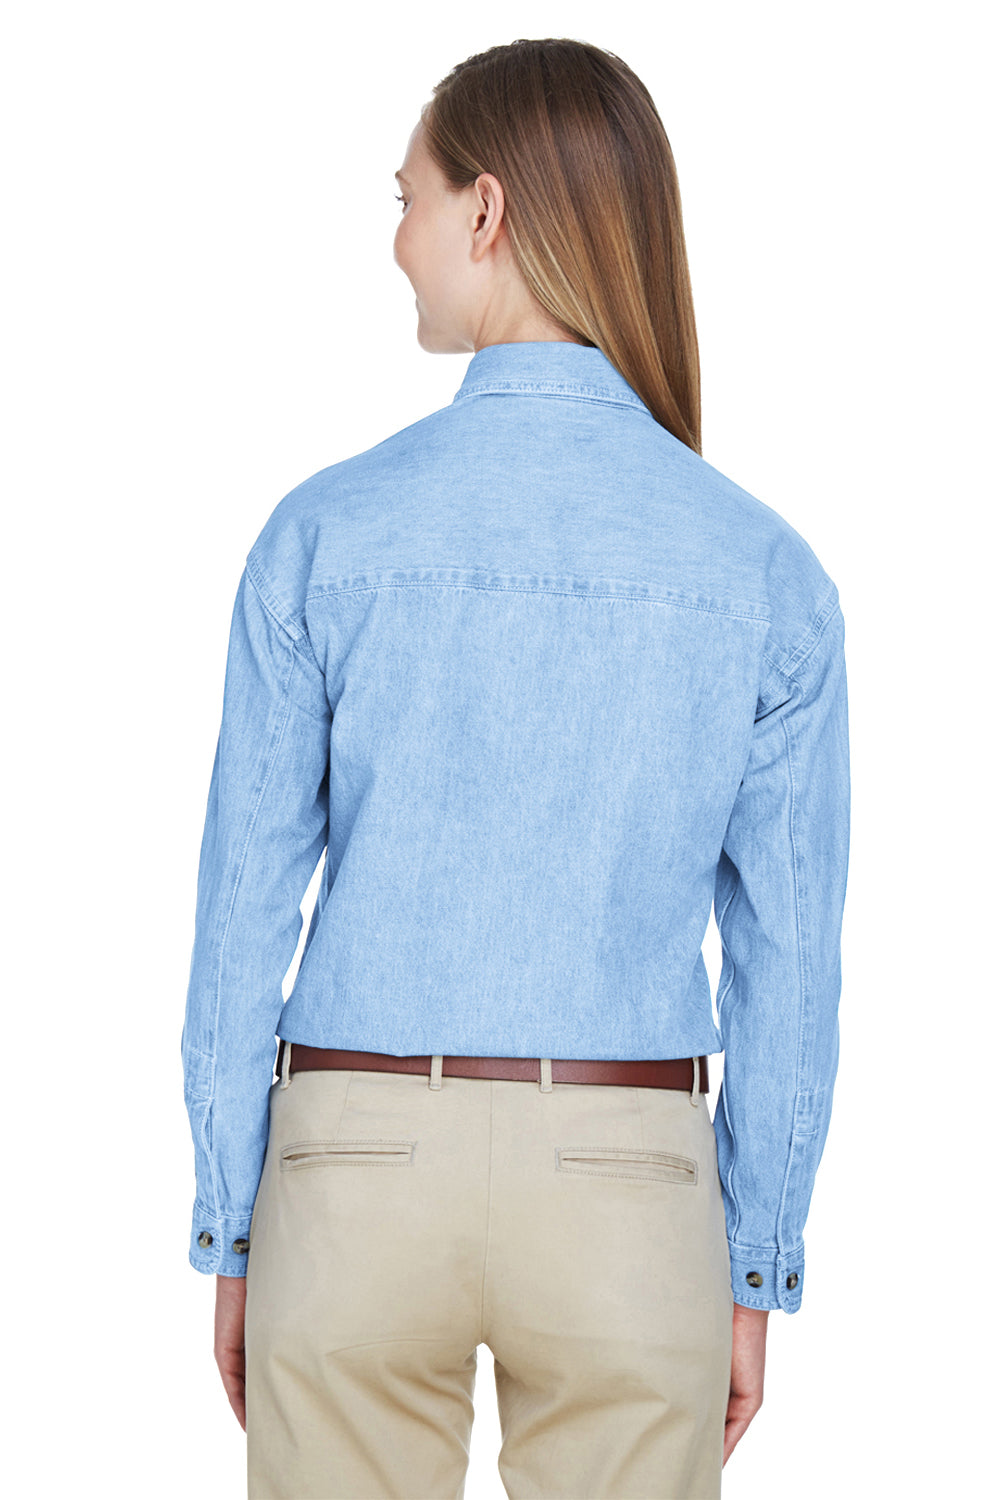 UltraClub 8966 Womens Cypress Denim Long Sleeve Button Down Shirt Light Blue Back